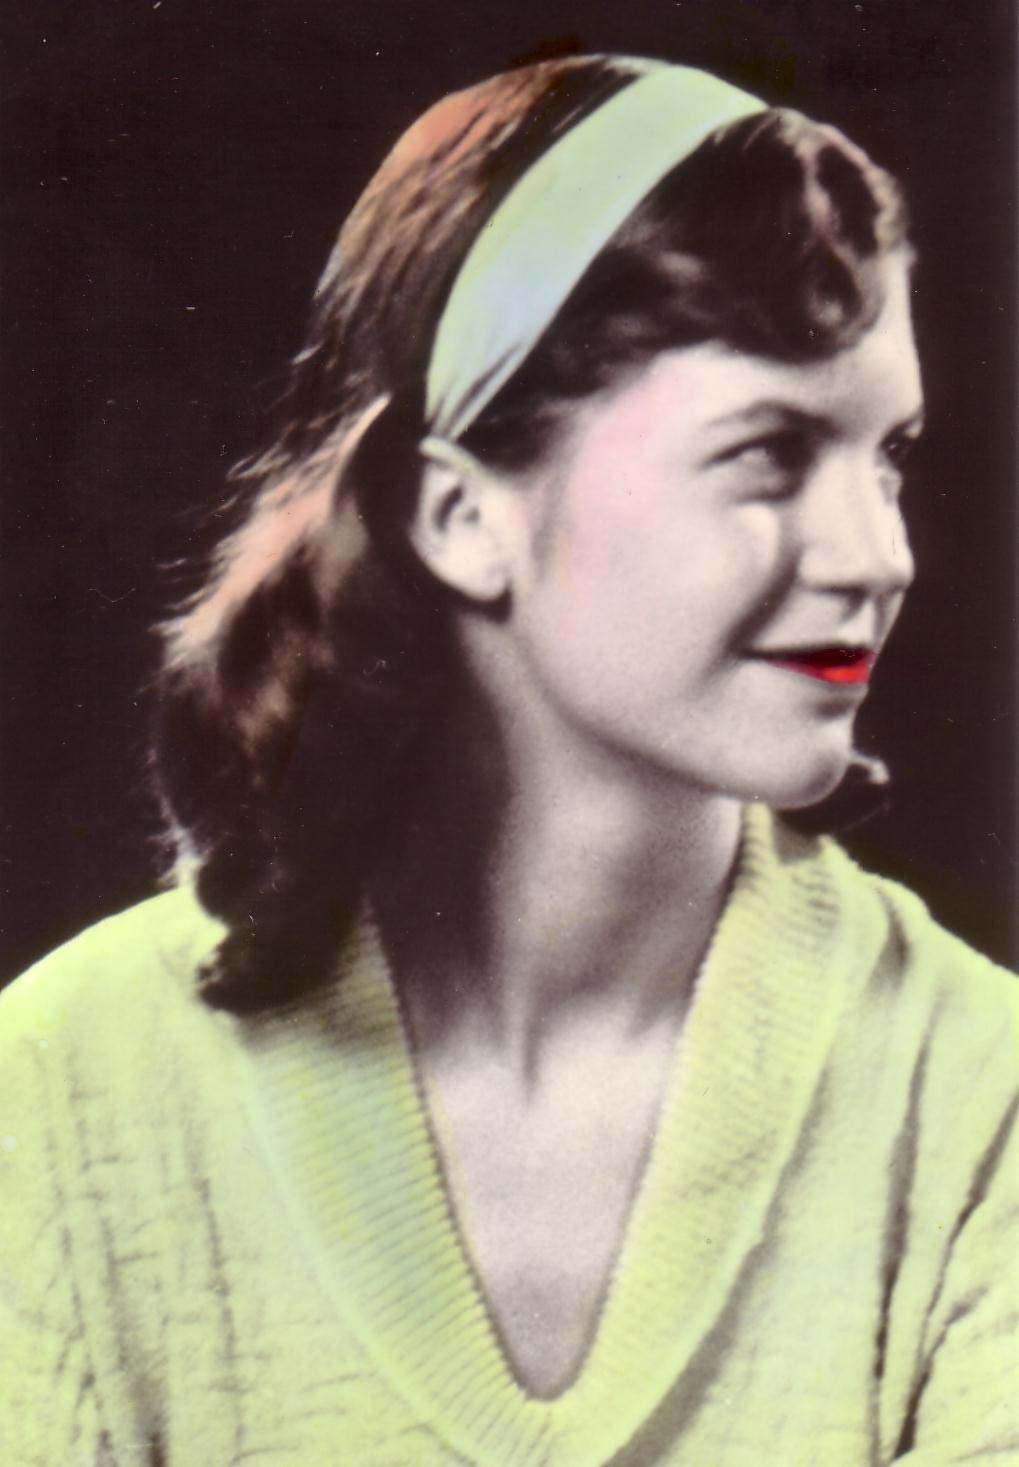 sylvia plath s struggles with self doubt literaryladiesguide